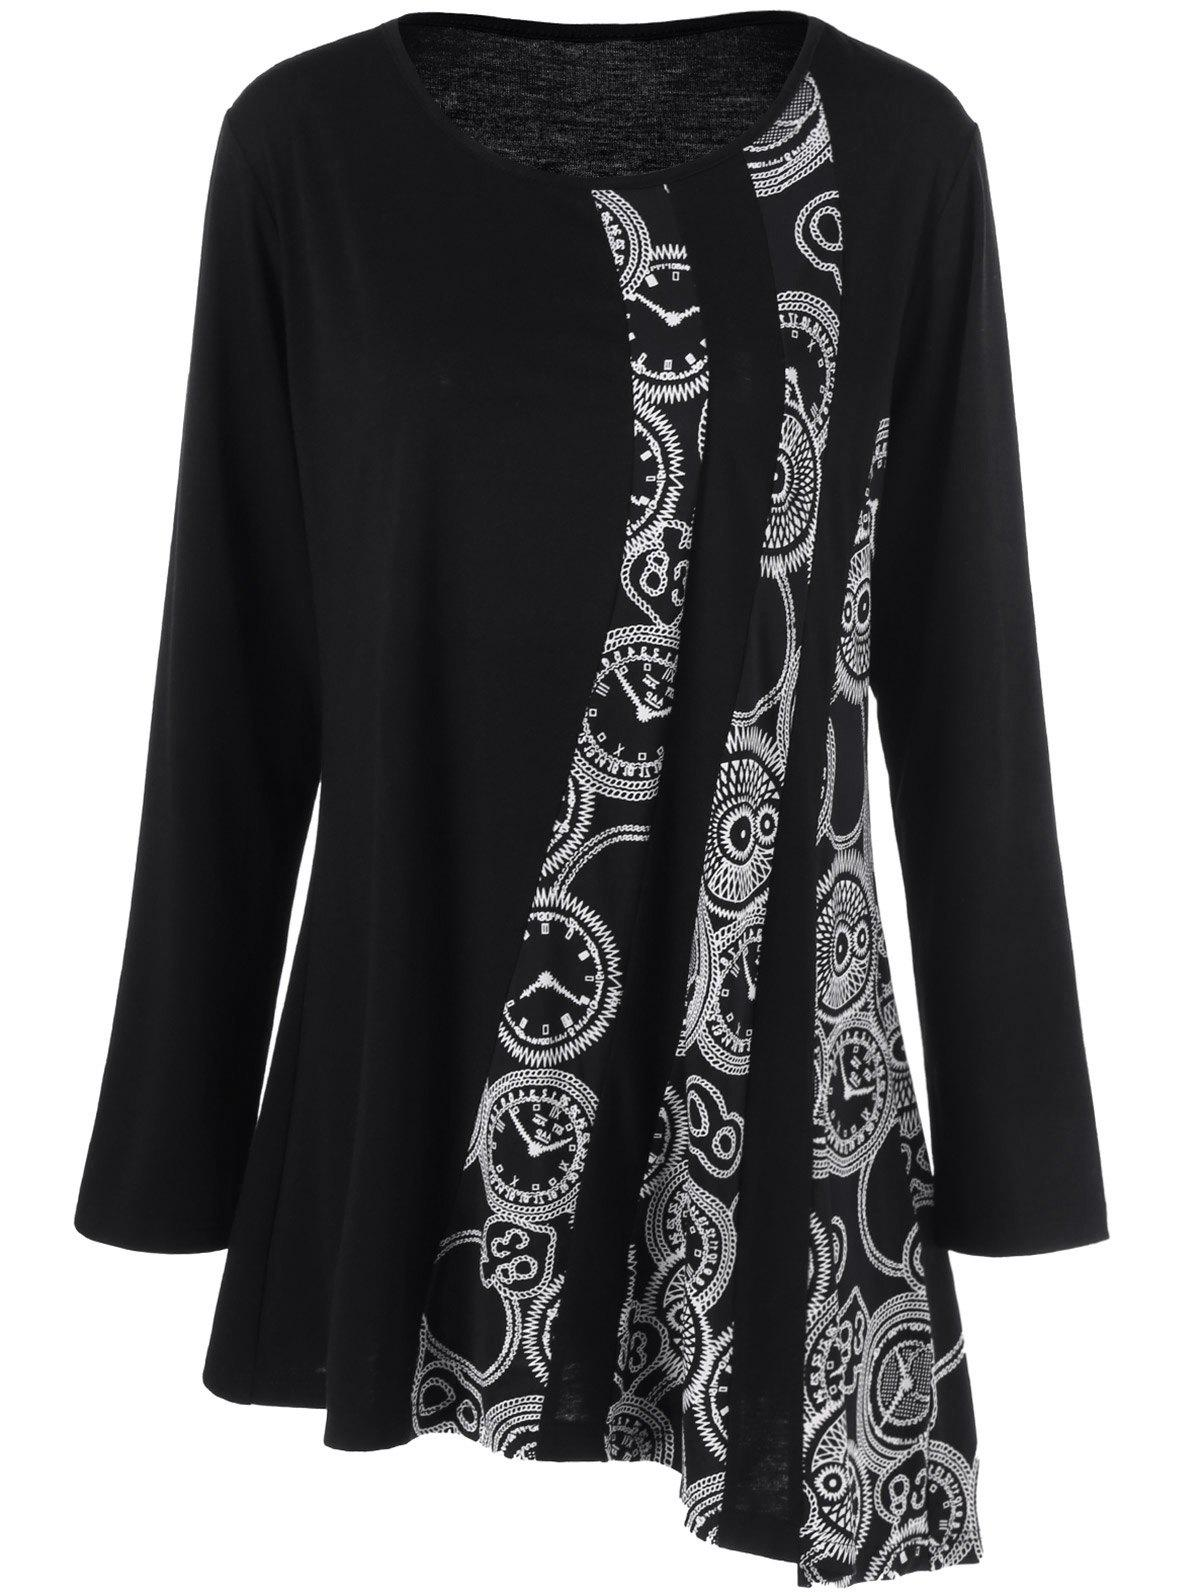 Plus Size Printed Asymmetric Tunic T-ShirtWOMEN<br><br>Size: 3XL; Color: BLACK; Material: Polyester,Spandex; Shirt Length: Long; Sleeve Length: Full; Collar: Scoop Neck; Style: Fashion; Season: Fall,Spring; Pattern Type: Print; Weight: 0.3200kg; Package Contents: 1 x T-Shirt;